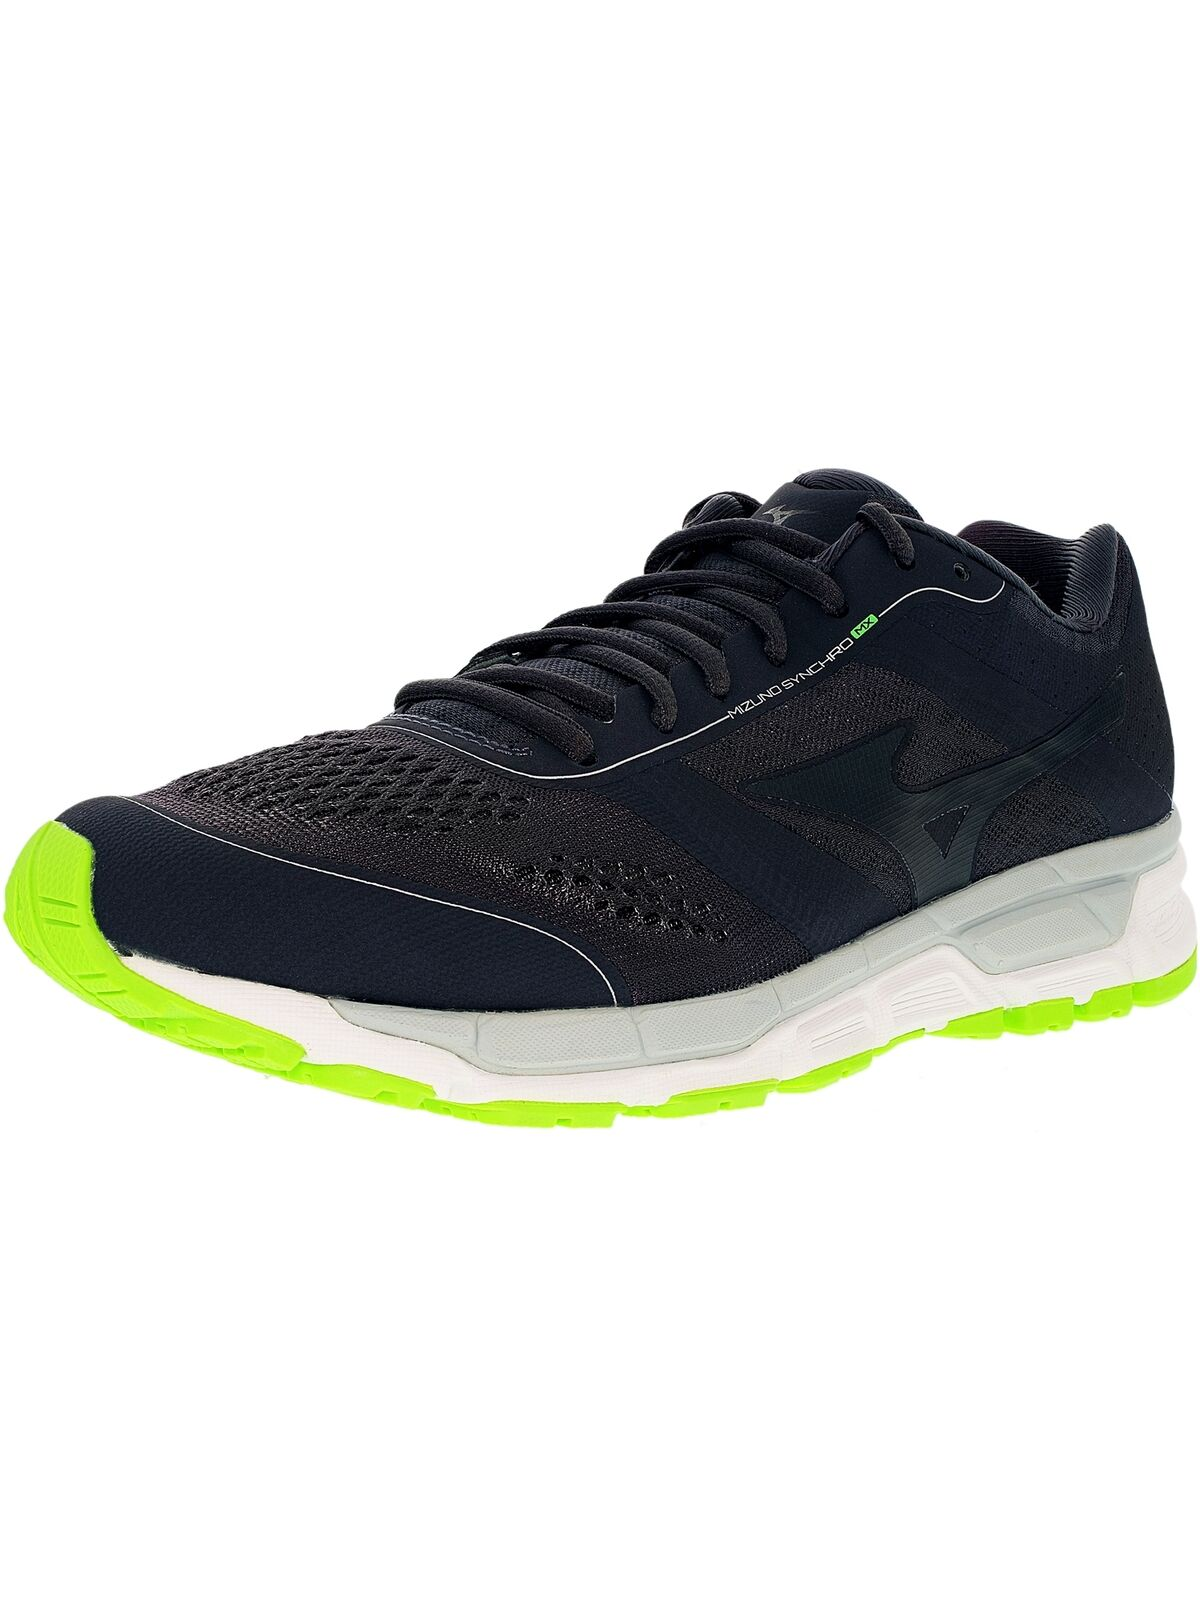 Mizuno Men's Synchro Mx Ankle-High Running shoes